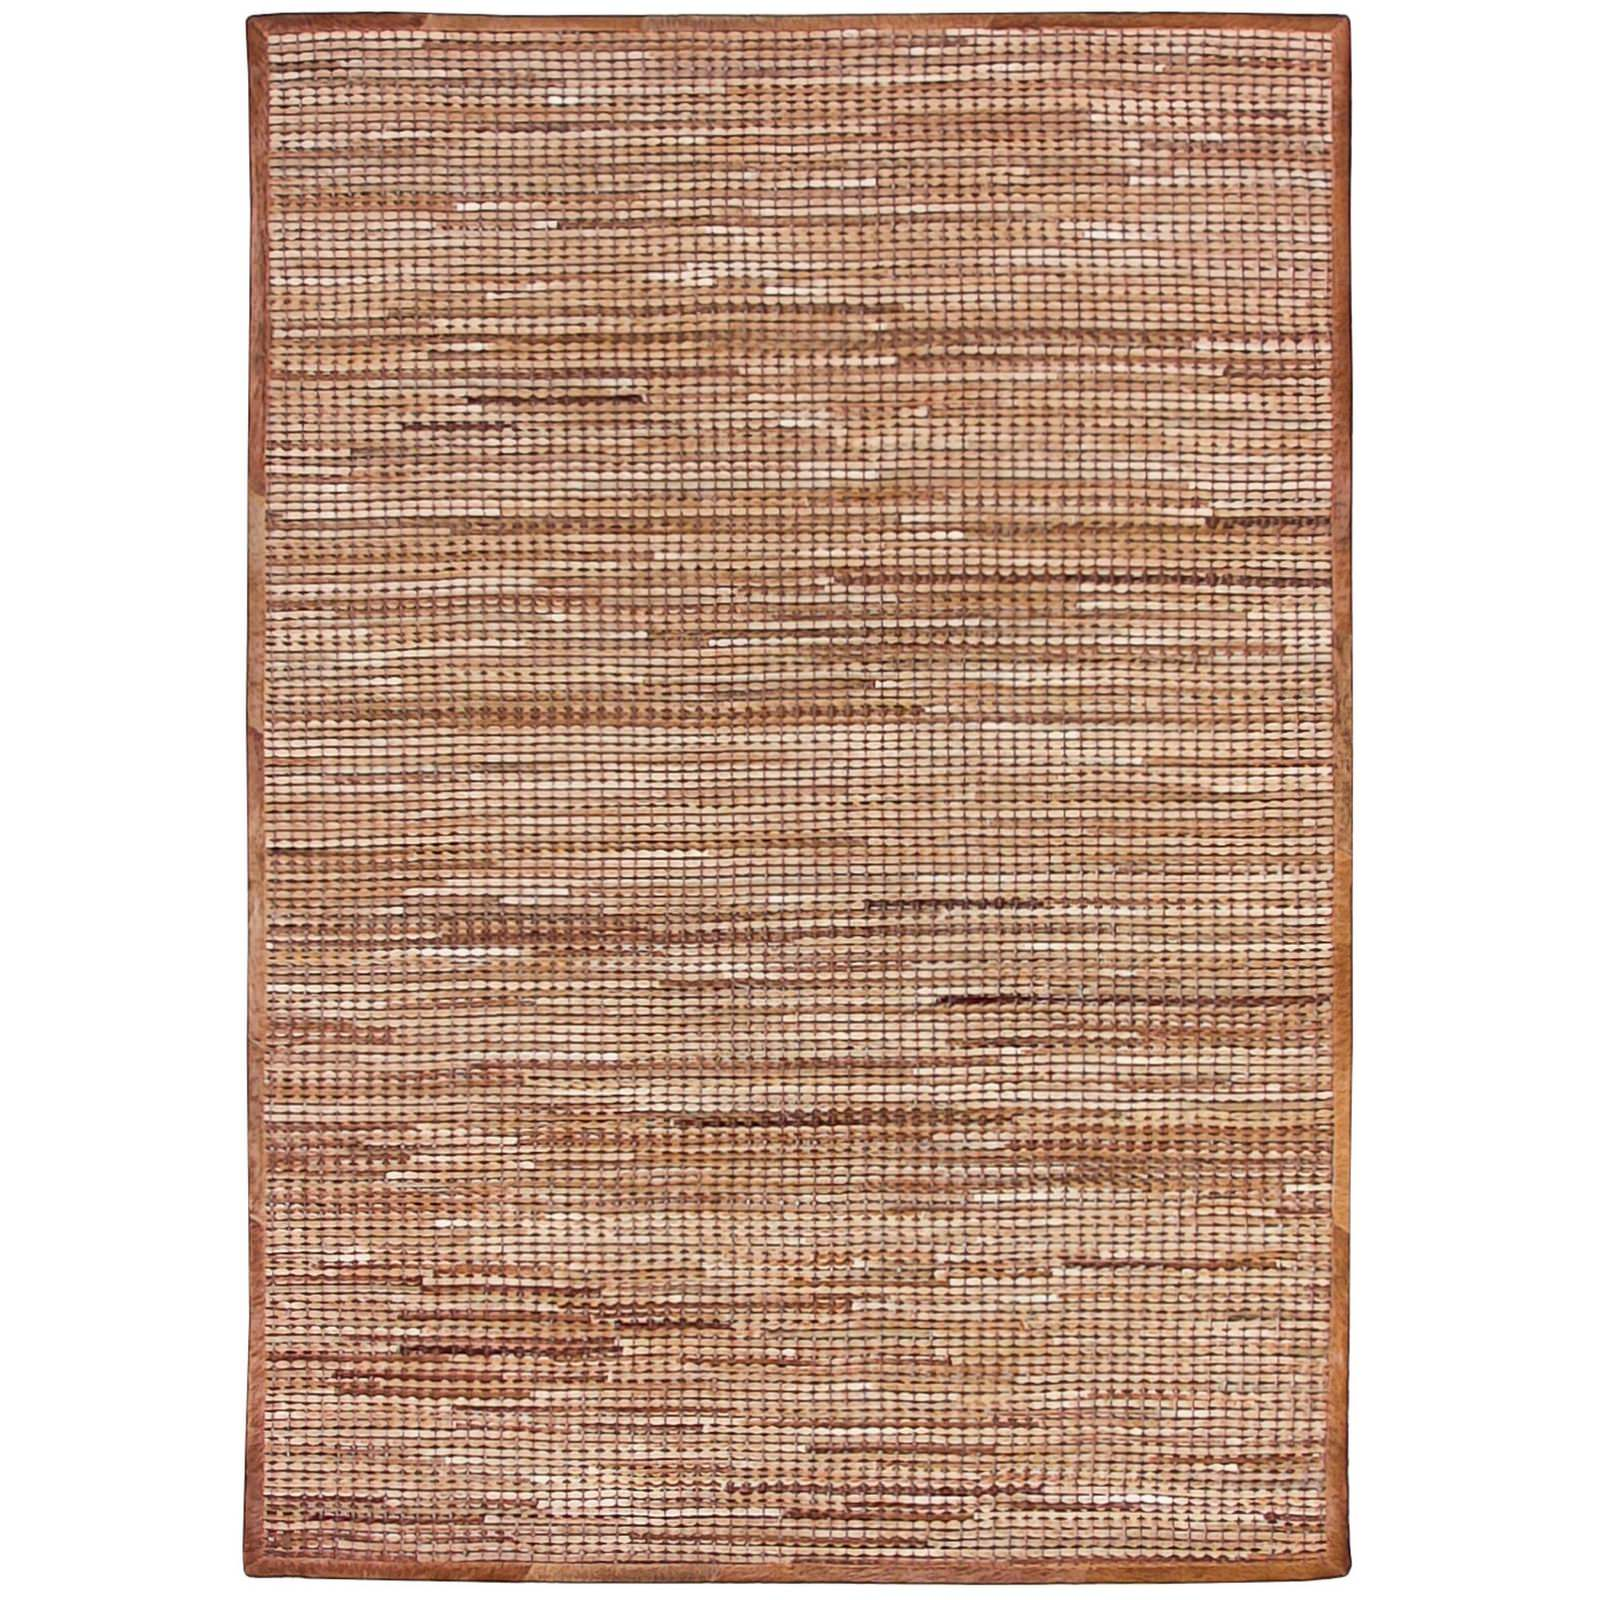 Chase Handwoven Hide & Leather Rug, 160x230cm, Caramel